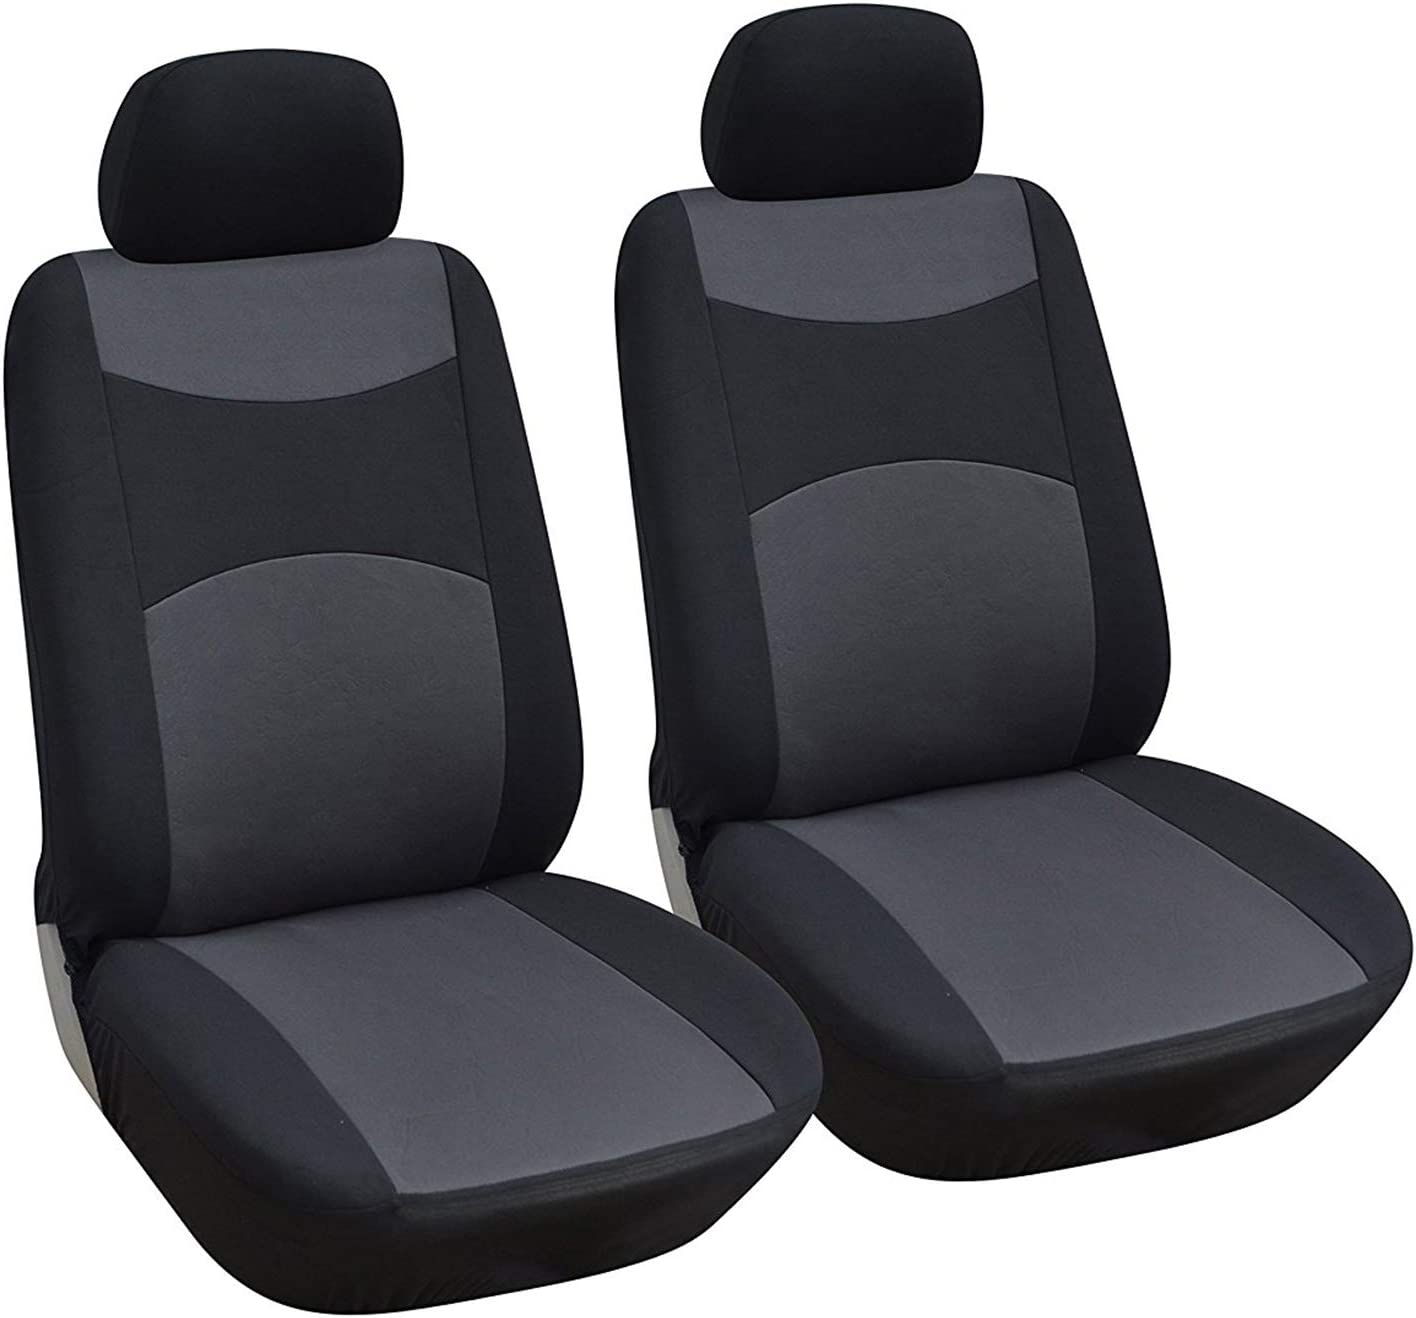 Manufacturer OFFicial shop Optimum Opt Brand. Fabric Cloth 2 Covers Front Dedication Fit Seat Volk Car